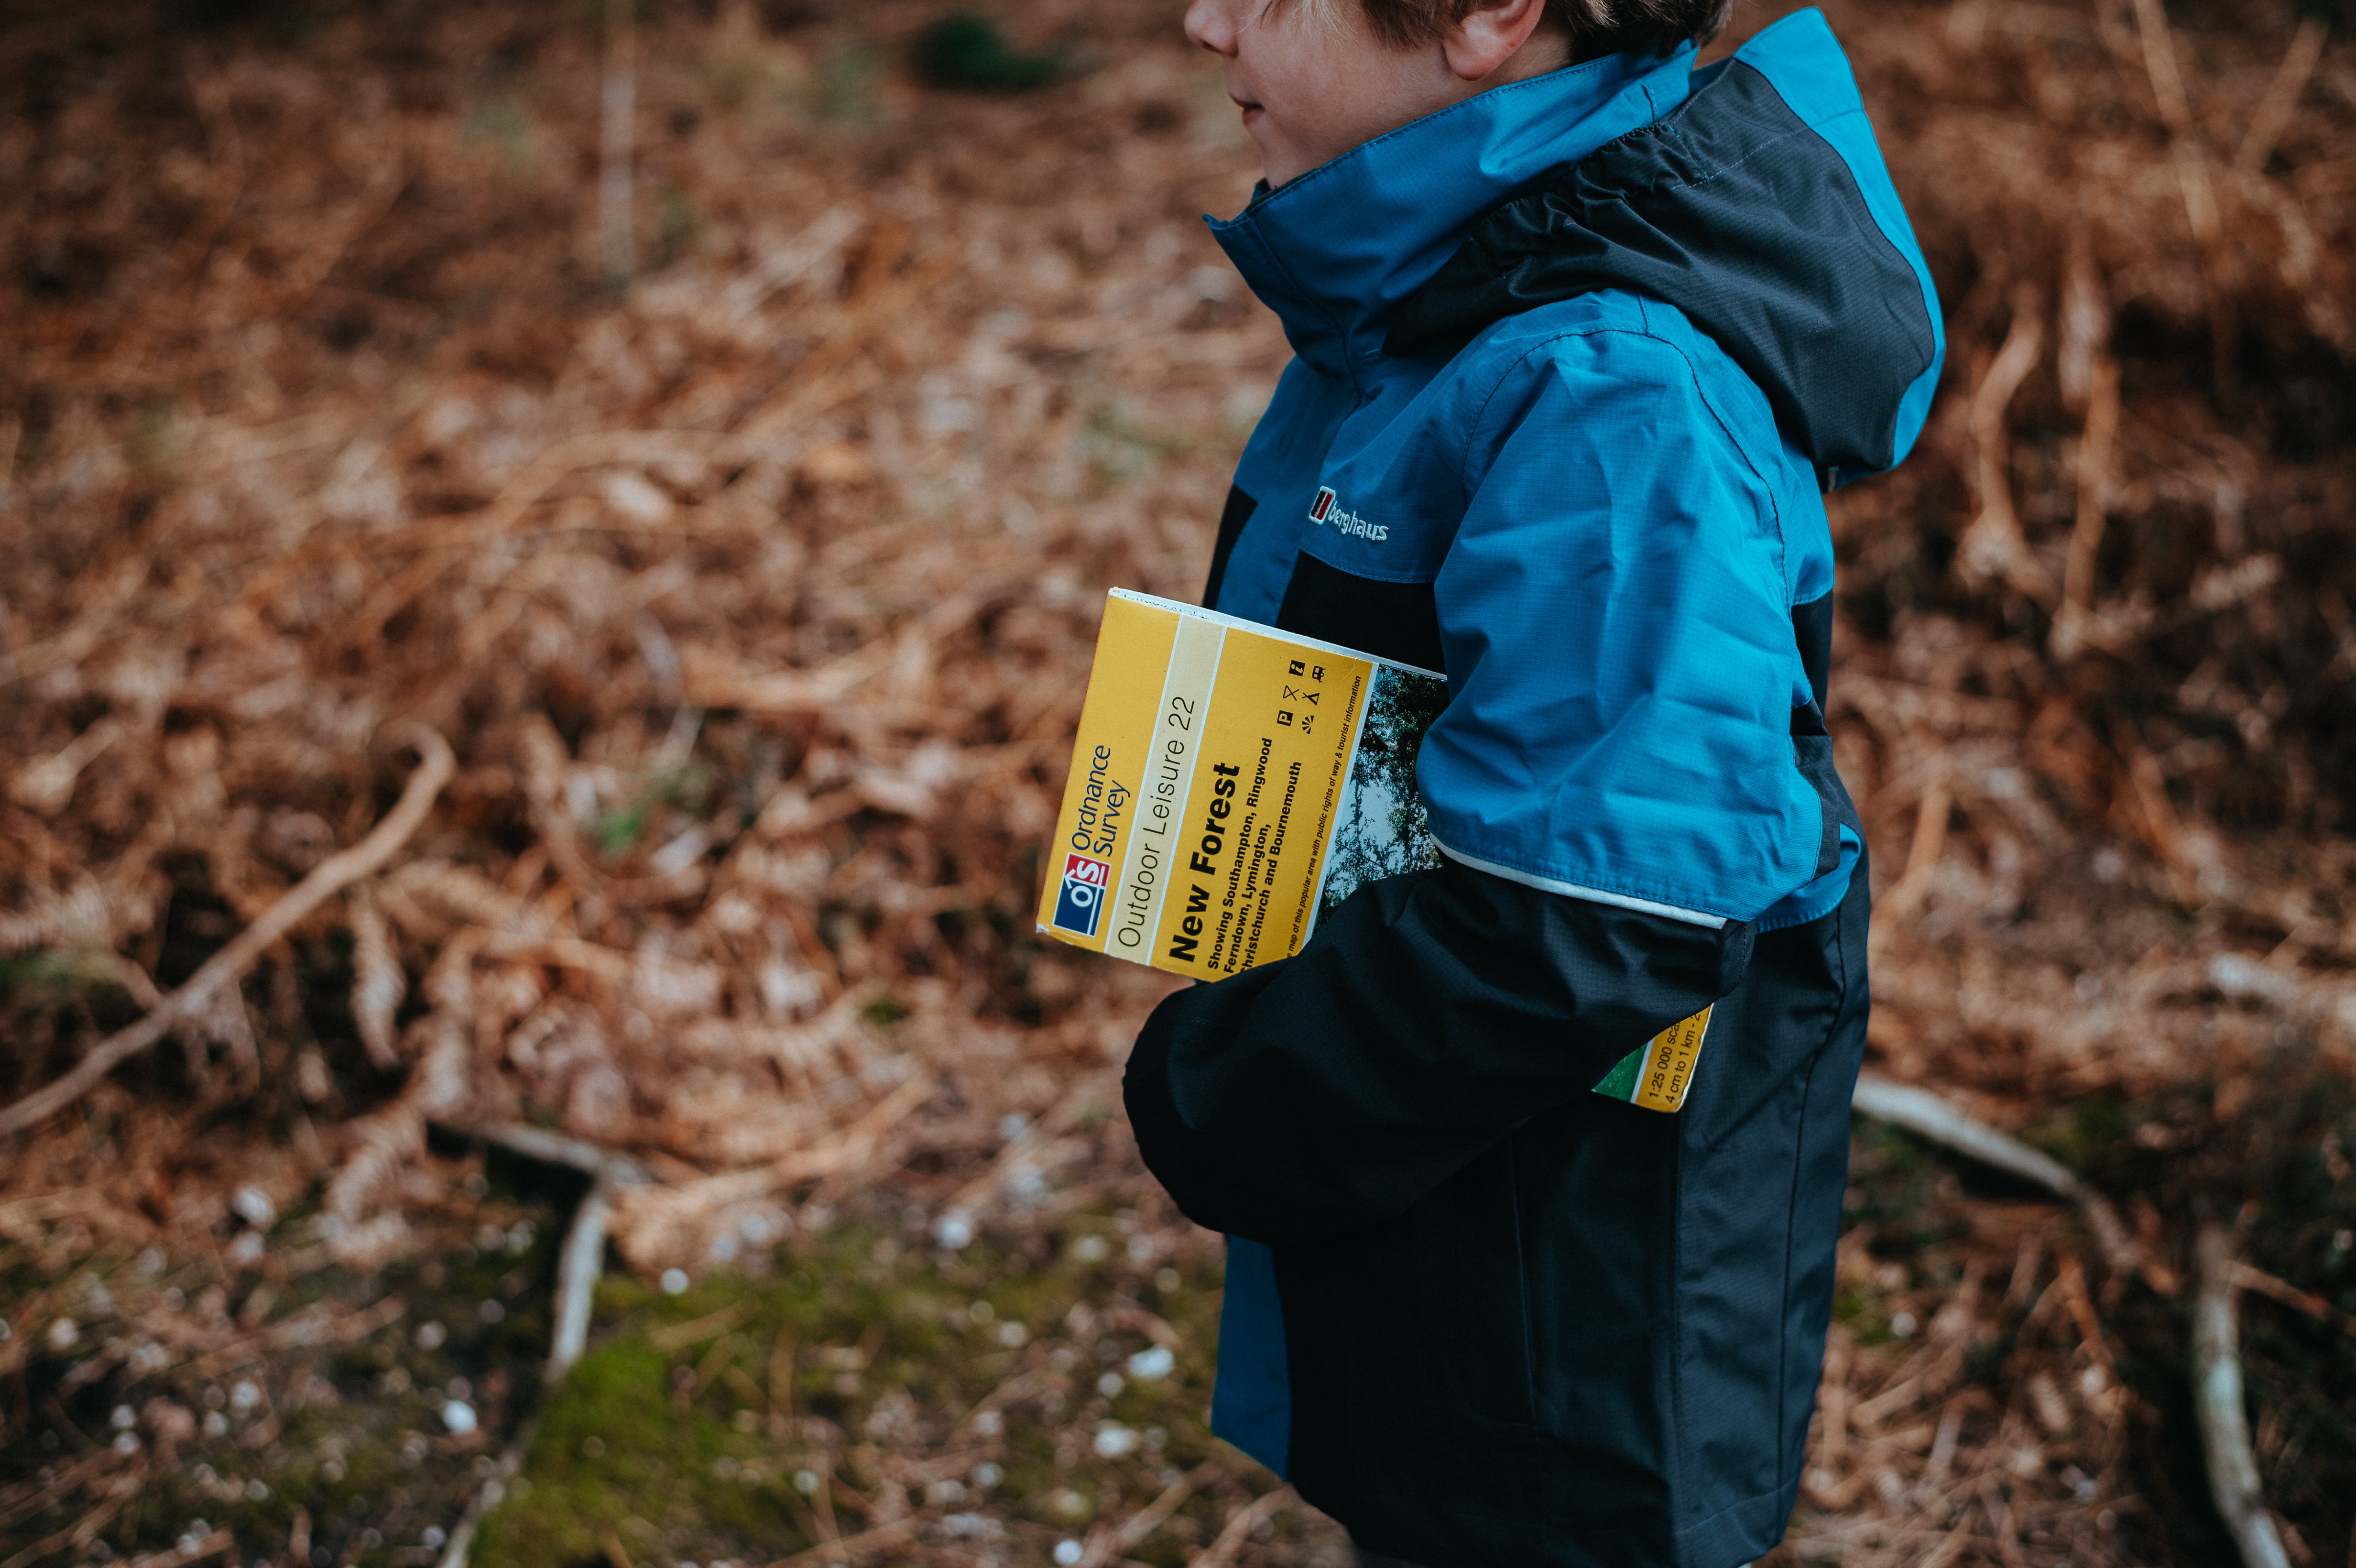 boy carrying book standing on ground during daytime